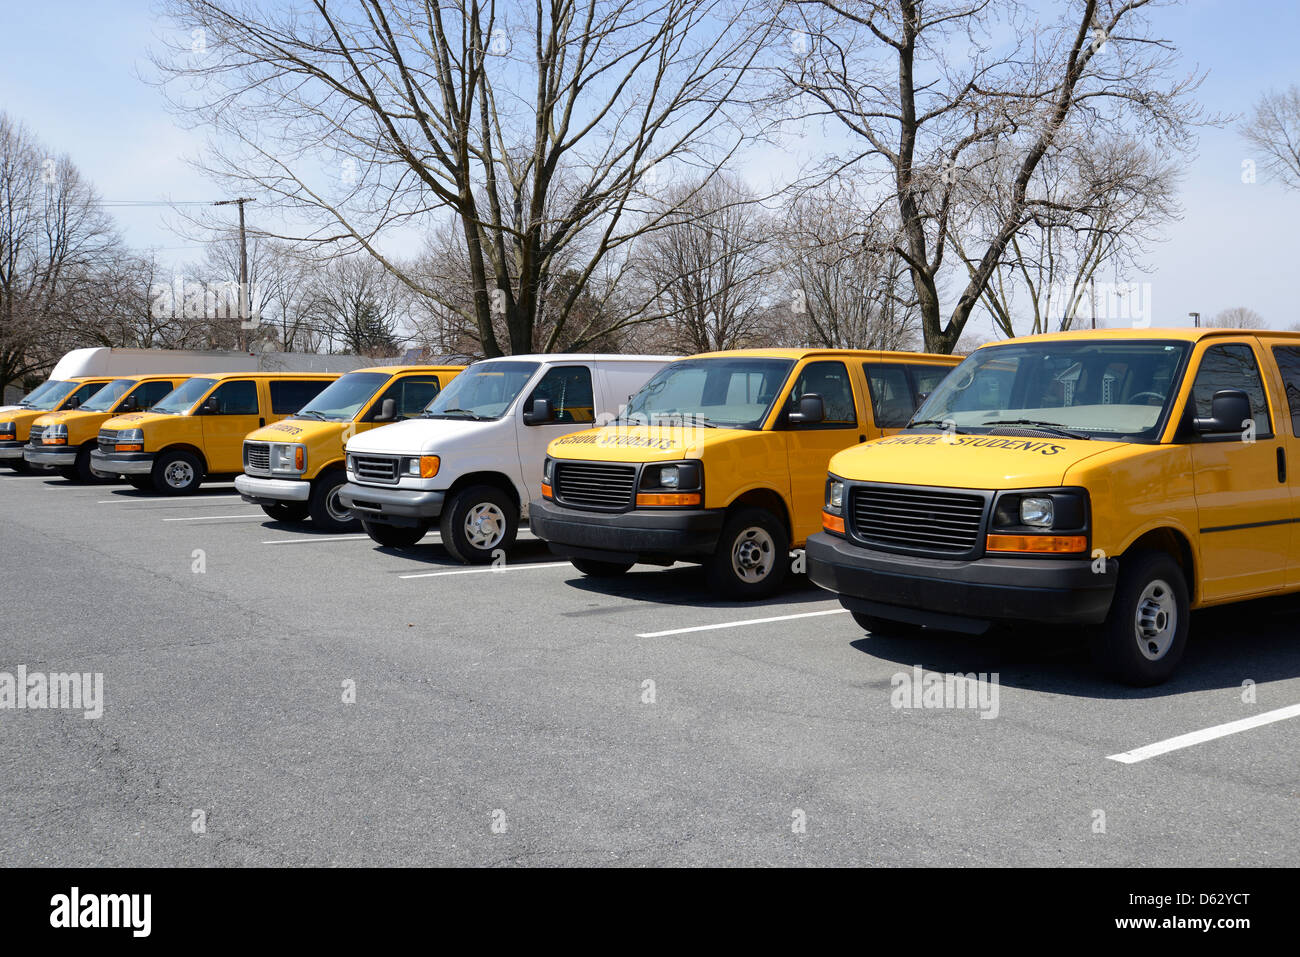 row of many yellow and white vans used to transport students to and from school - Stock Image